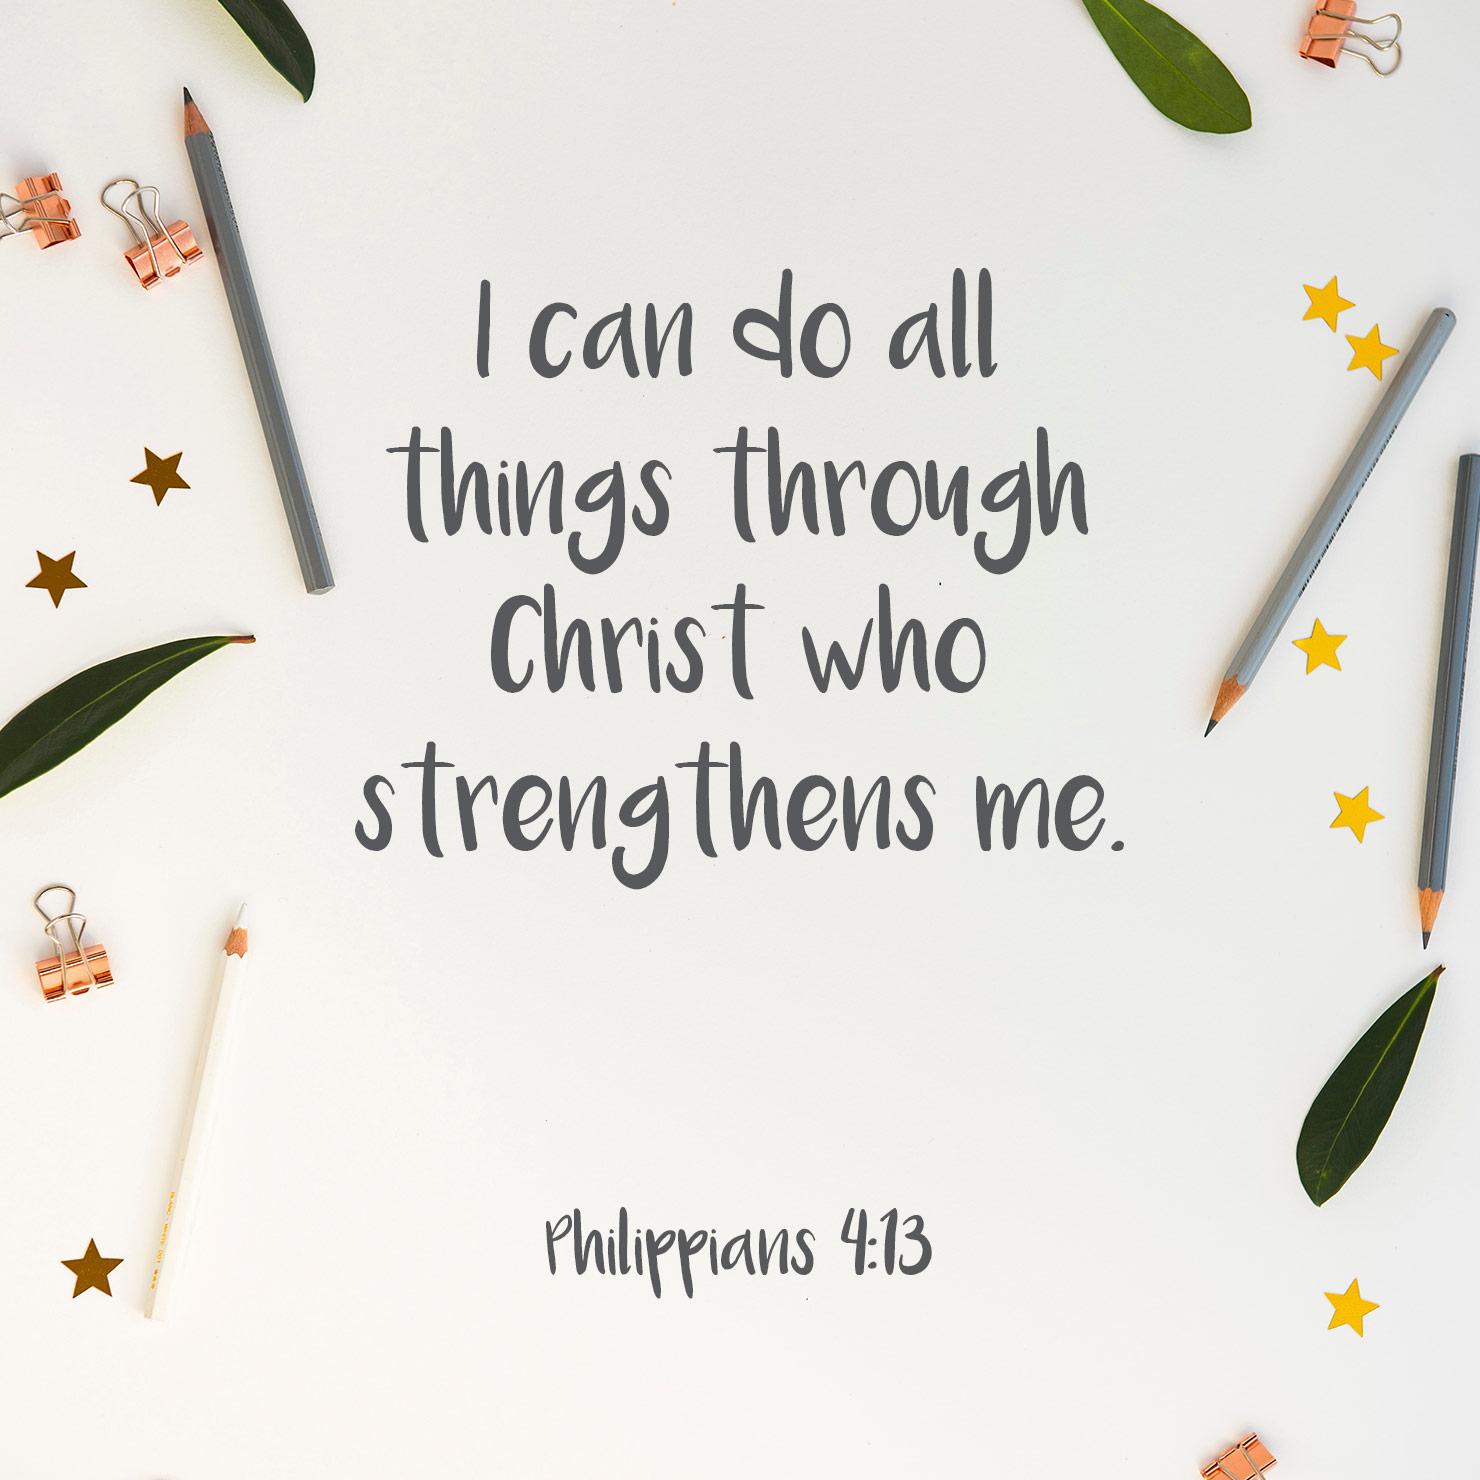 religious graduation quote: i can do things through Christ who strengthens me - philippians 413